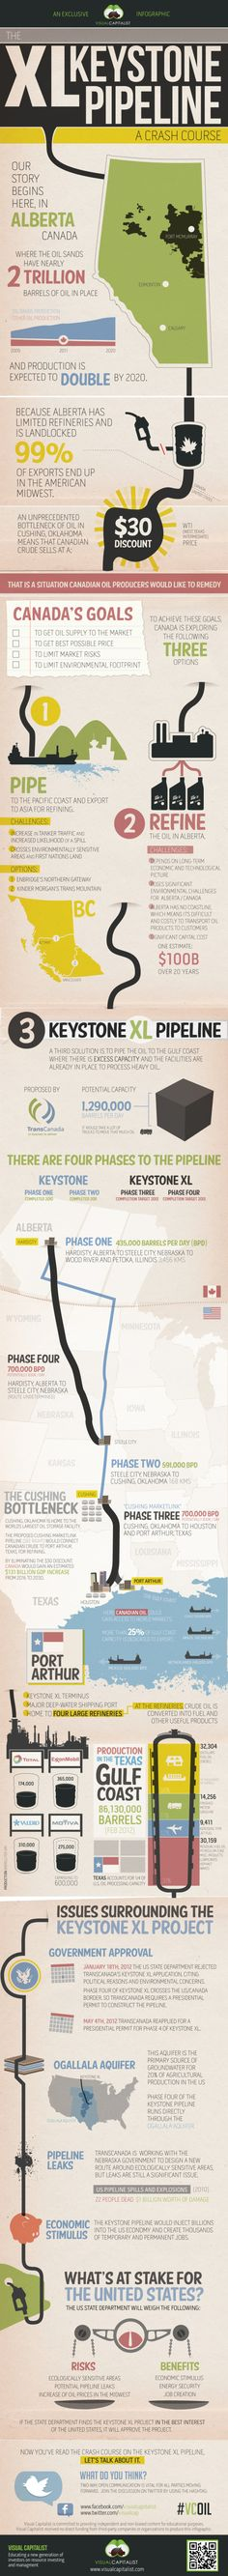 """The Keystone XL Pipeline: A Crash Course Infographic  """"Our story begins here, in Alberta, Canada, where the oil sands have nearly 2 trillion barrels in place and production is expected to double by 2020."""" http://www.theenergyreport.com/pub/na/13508"""